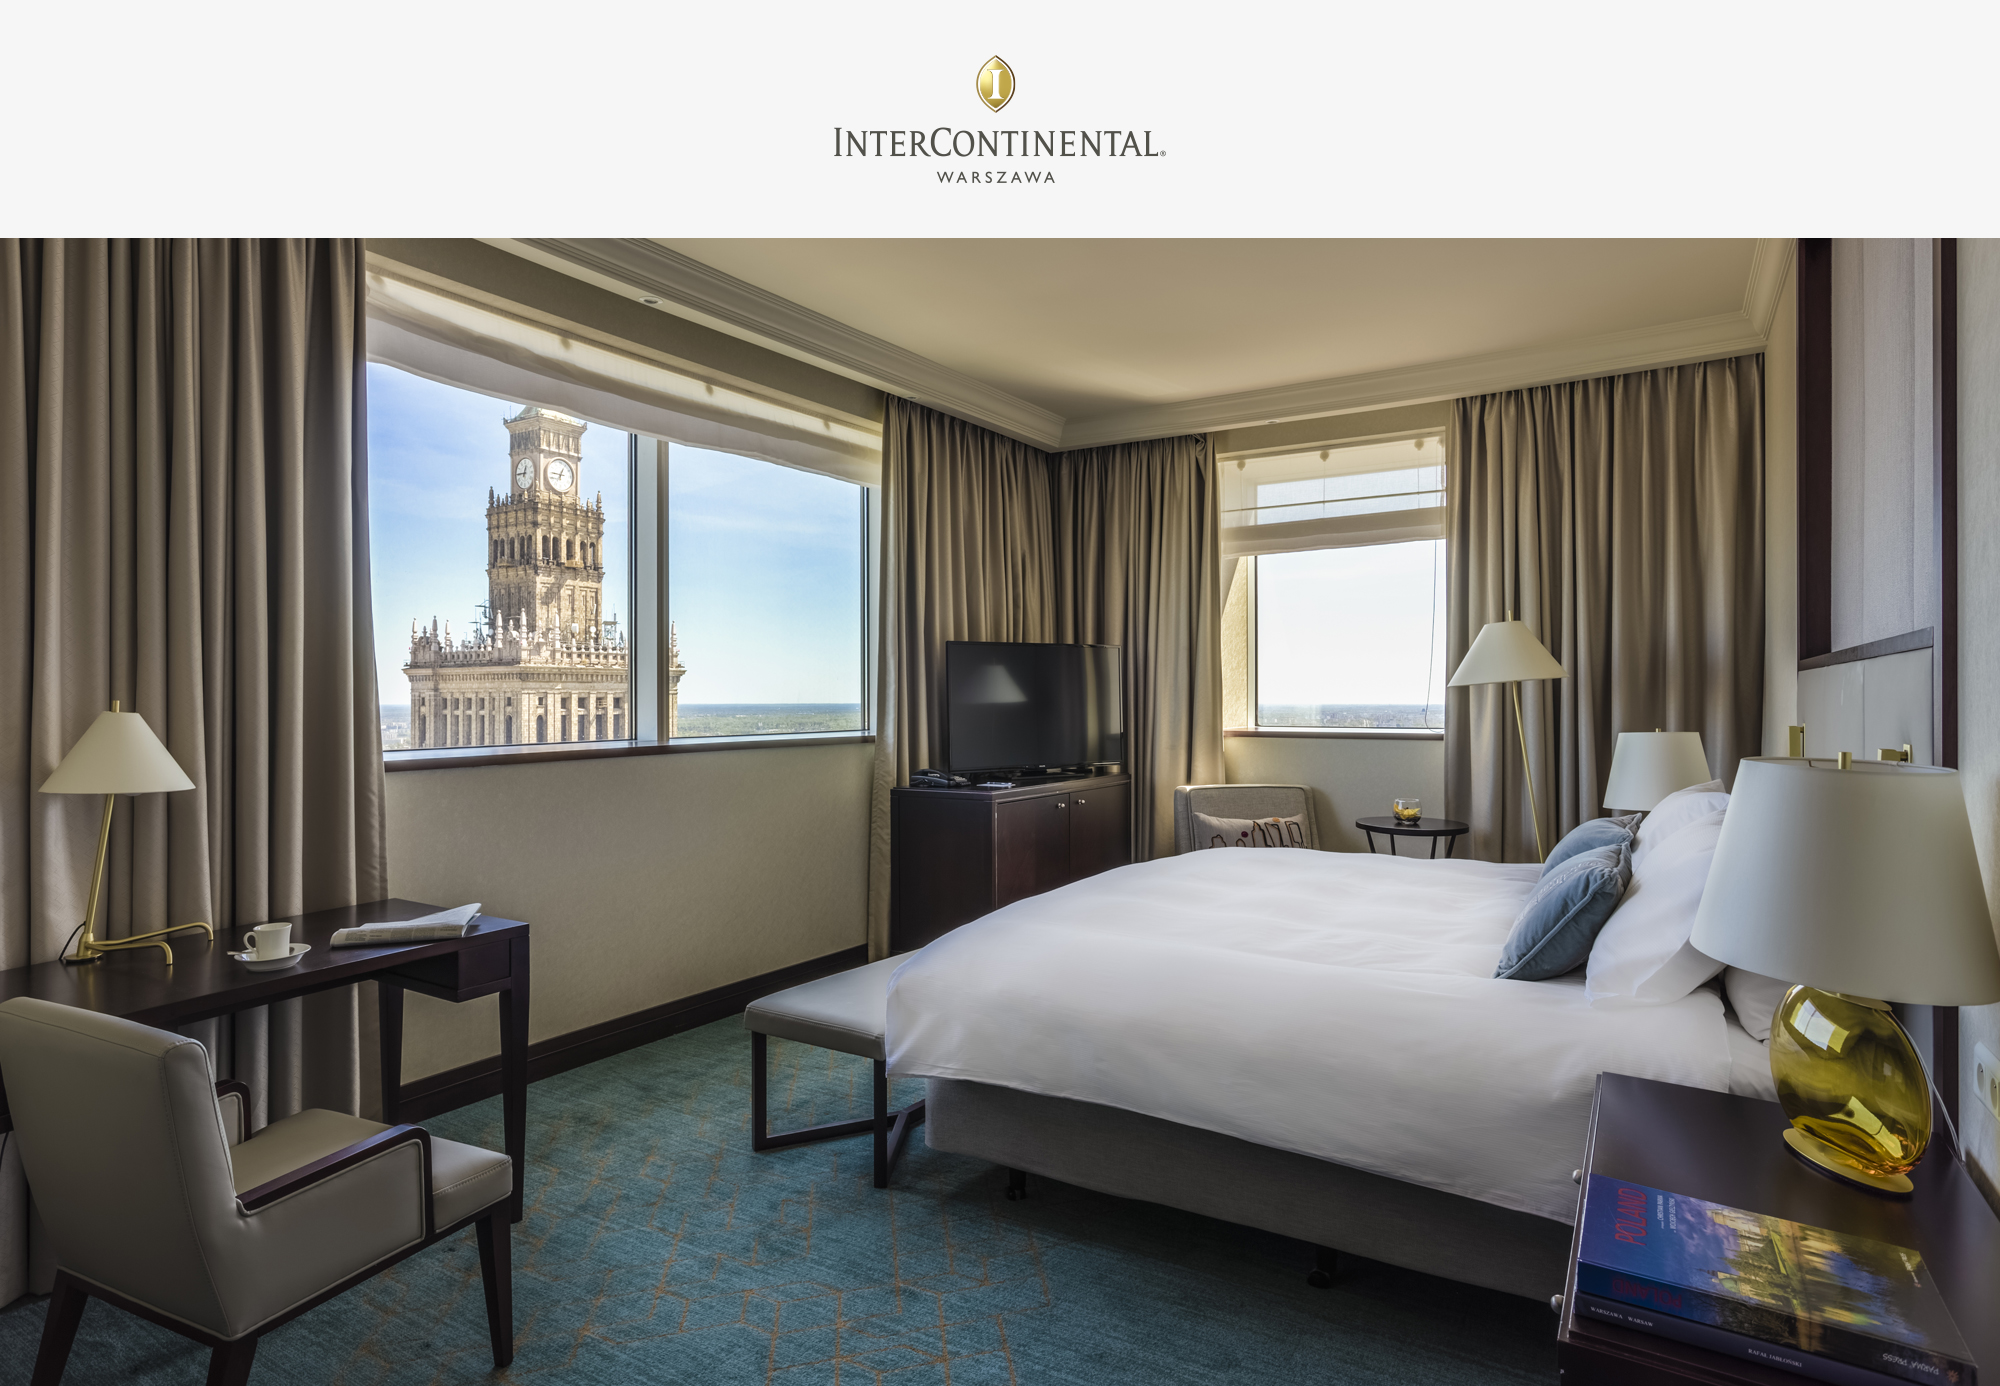 Weekend stay for Two in deluxe room (2 nights)